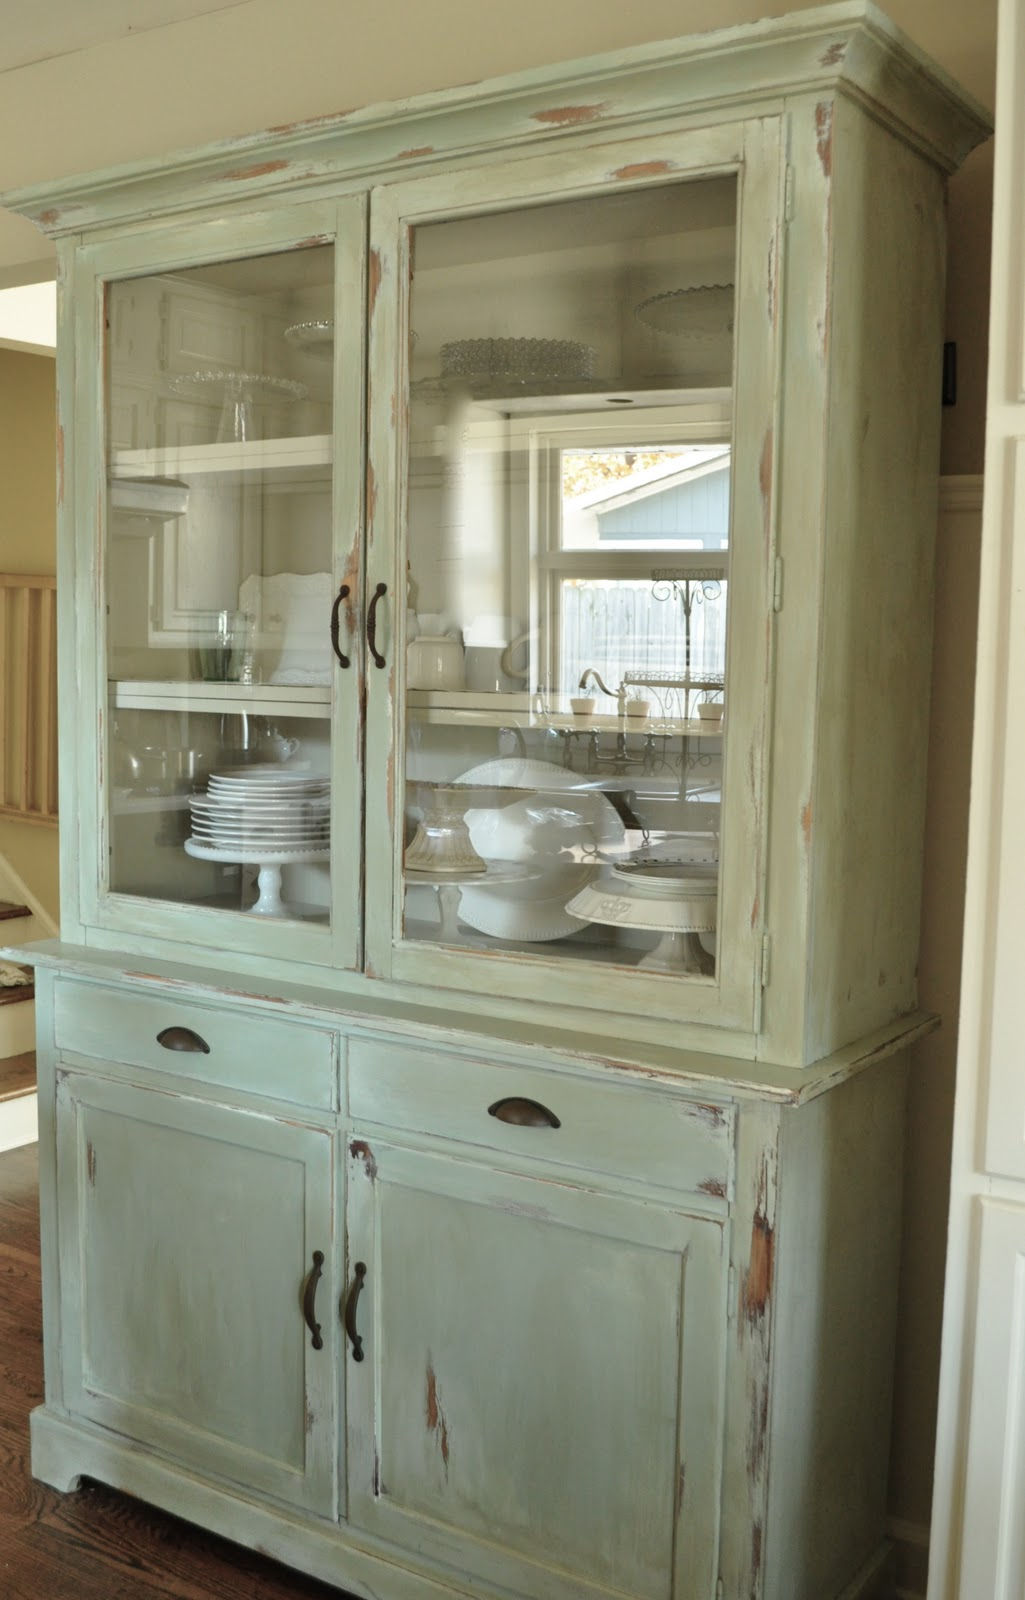 surprising How To Make Cabinets Look Old Part - 4: how to make a new peice of furinture look old with paint and distressing